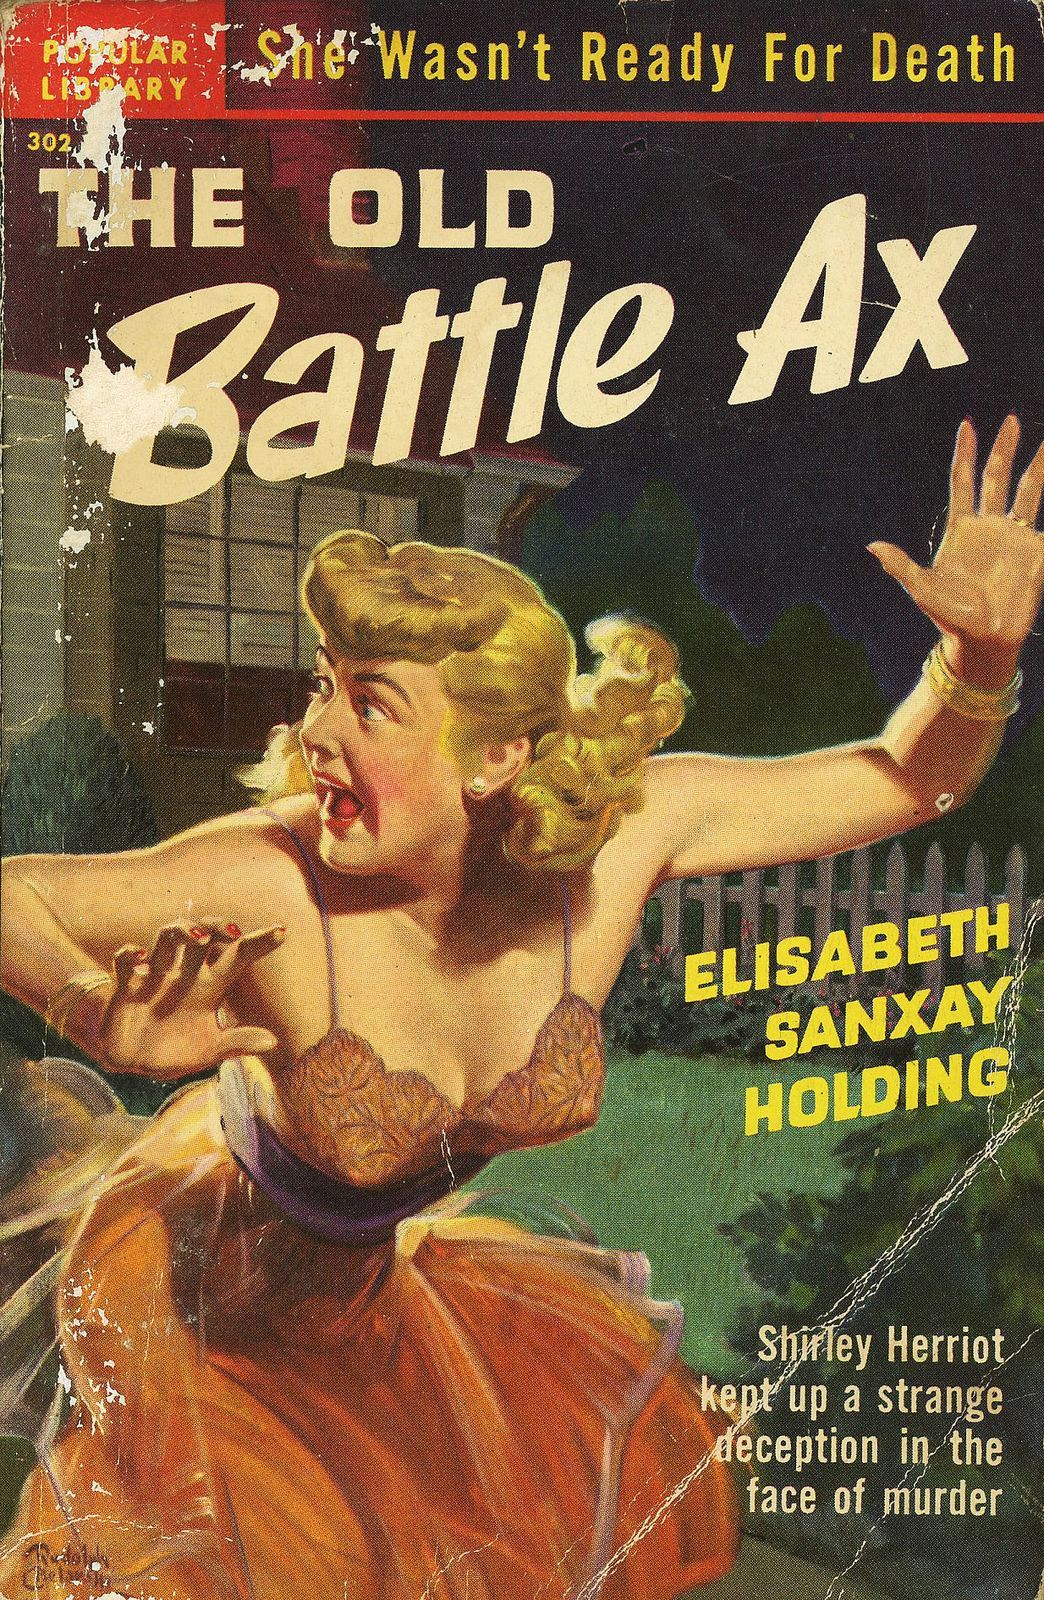 21 Fantastic Pulp Fiction Book Titles From The Mid 20th Century